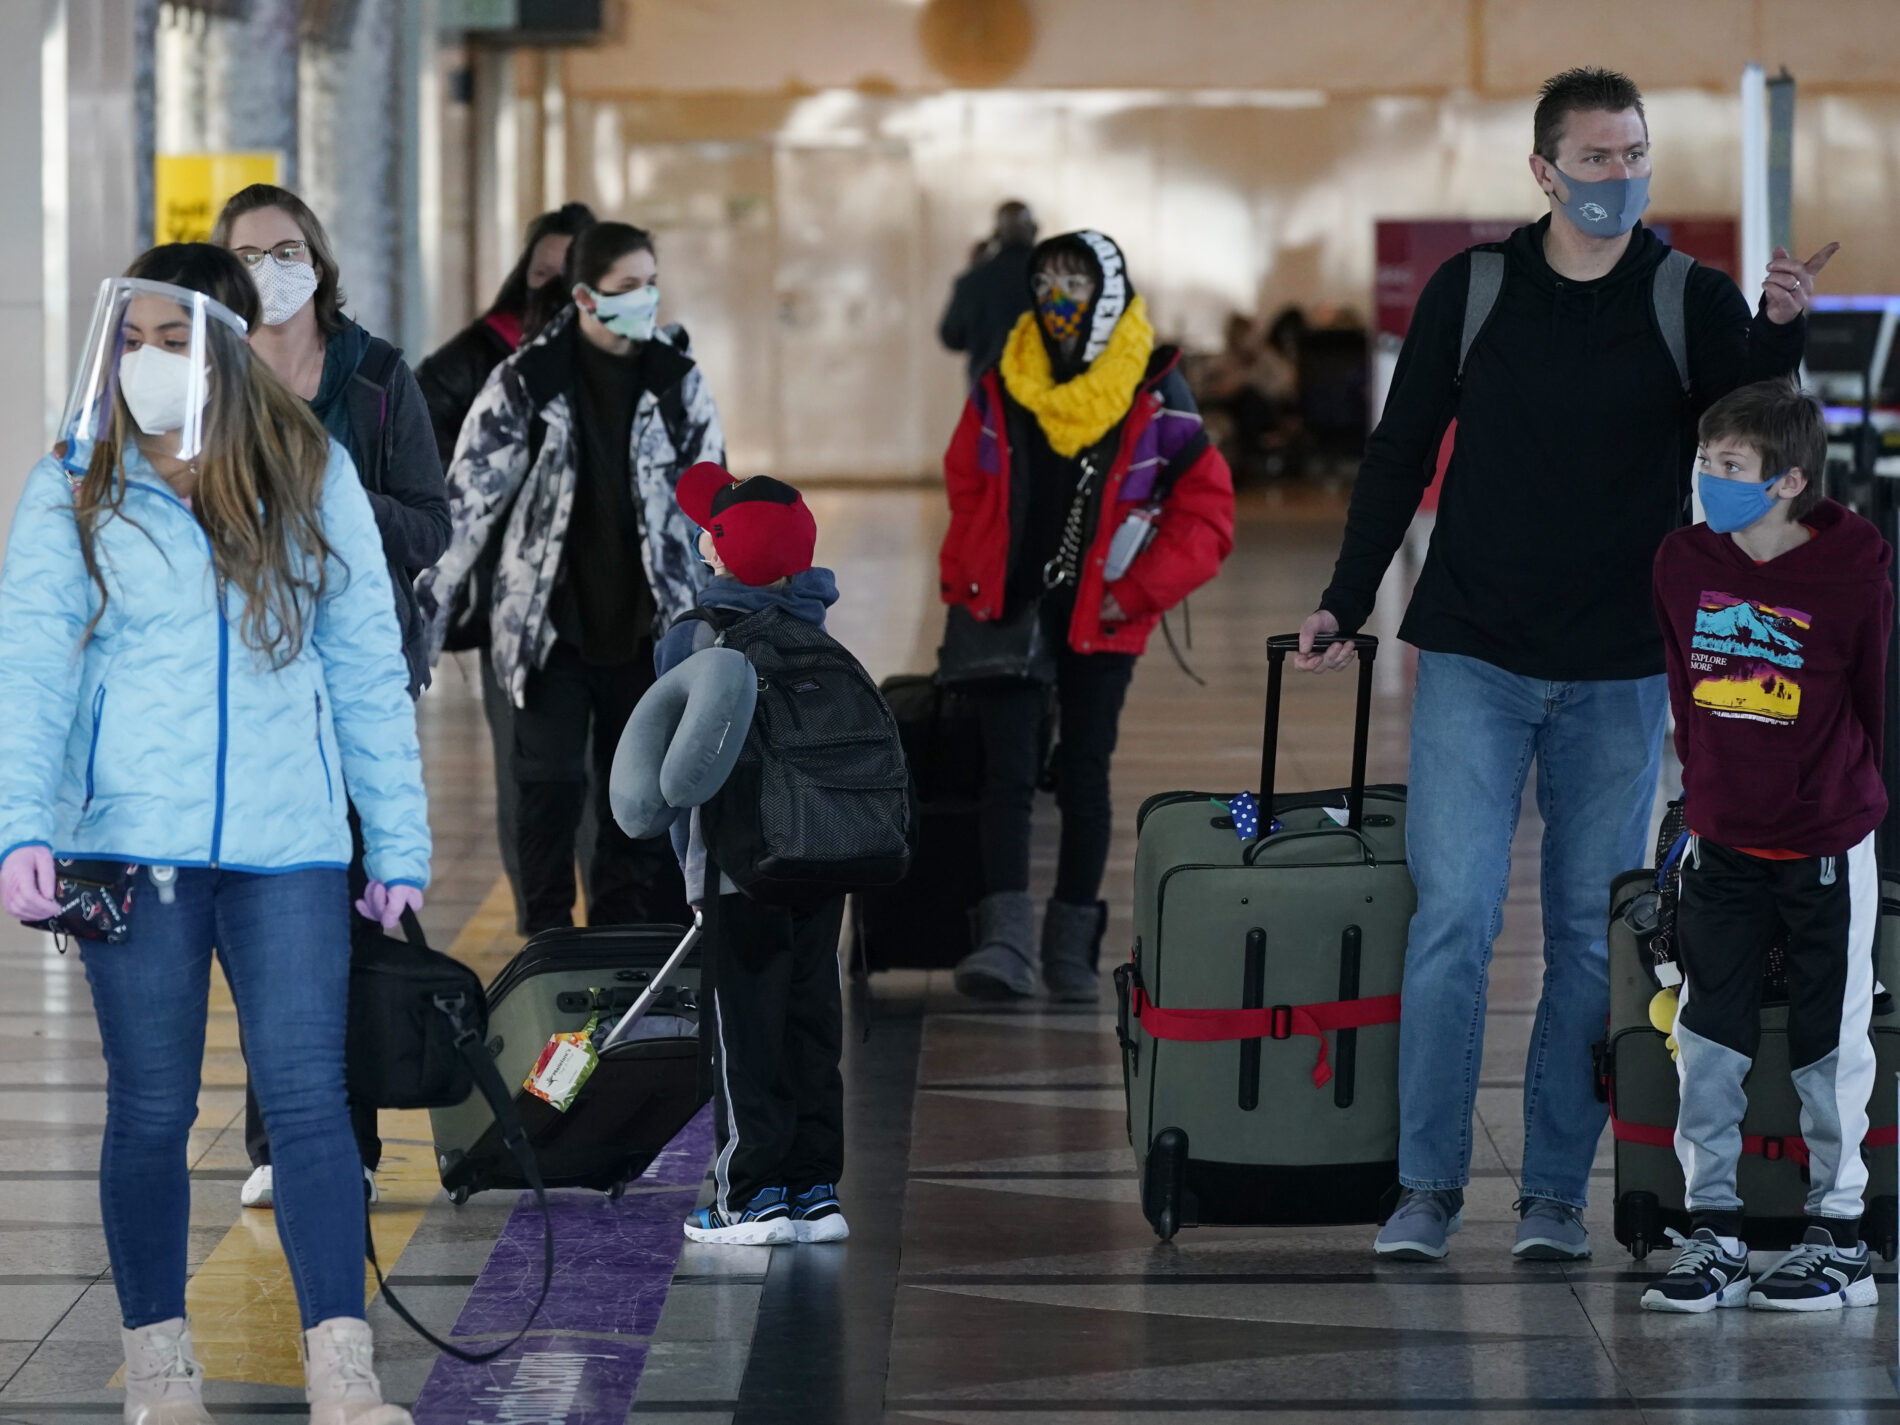 Travelers wear face masks in the main terminal of Denver International Airport